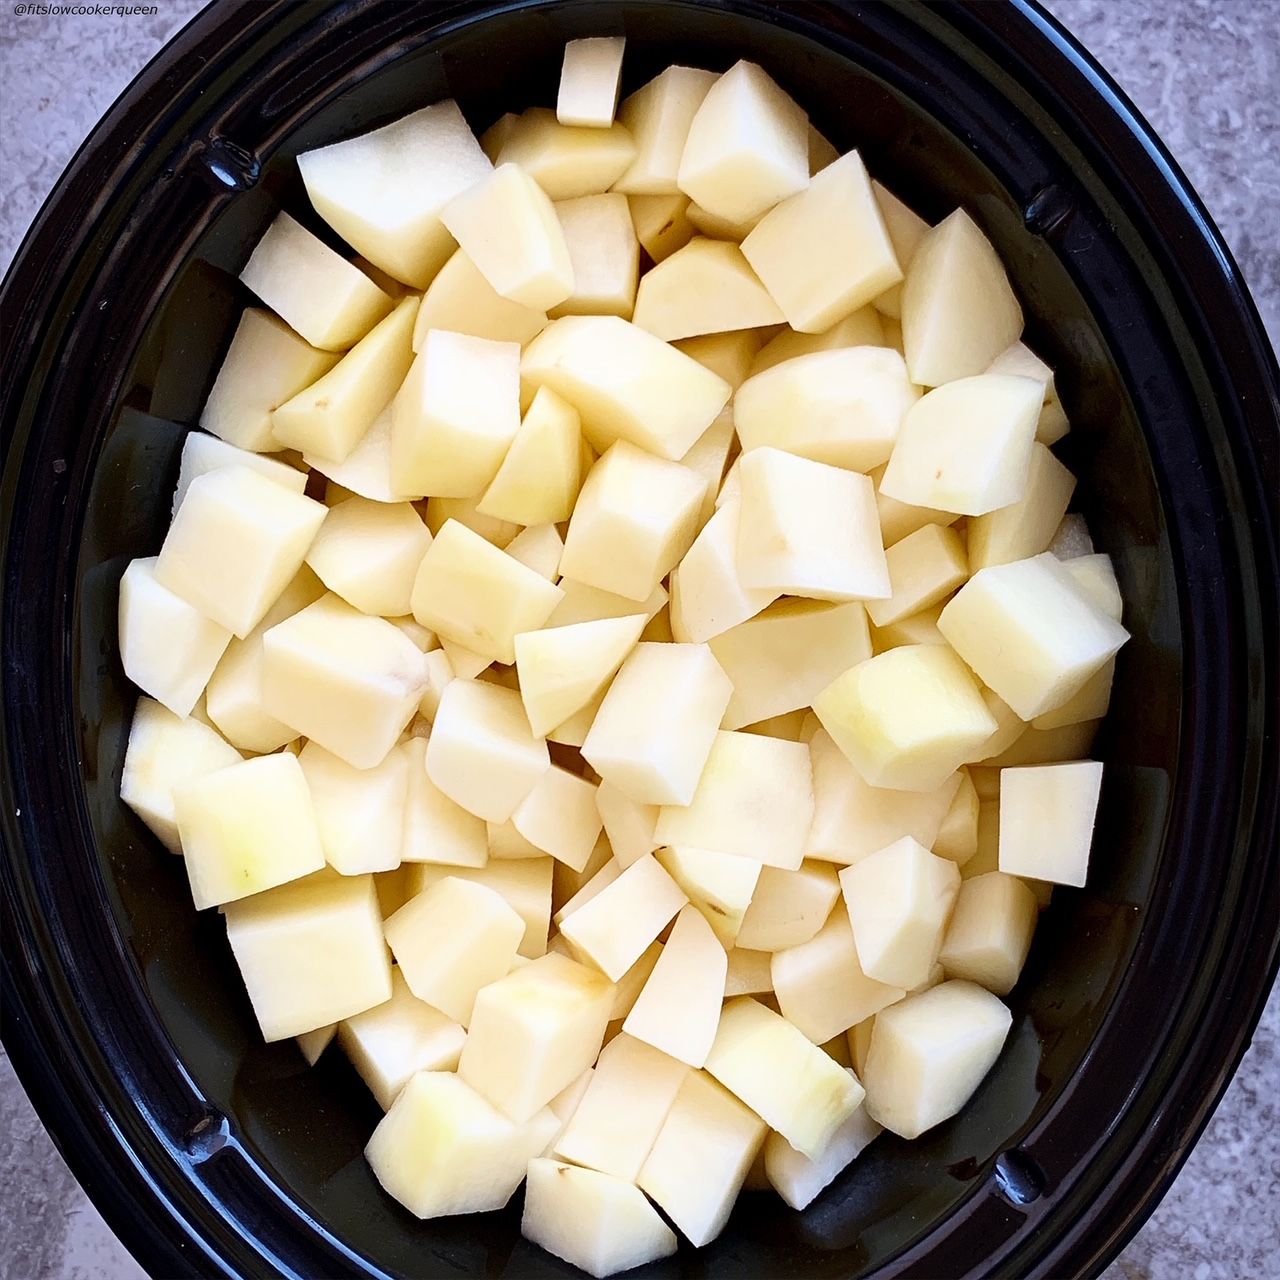 raw potatoes in the slow cooker